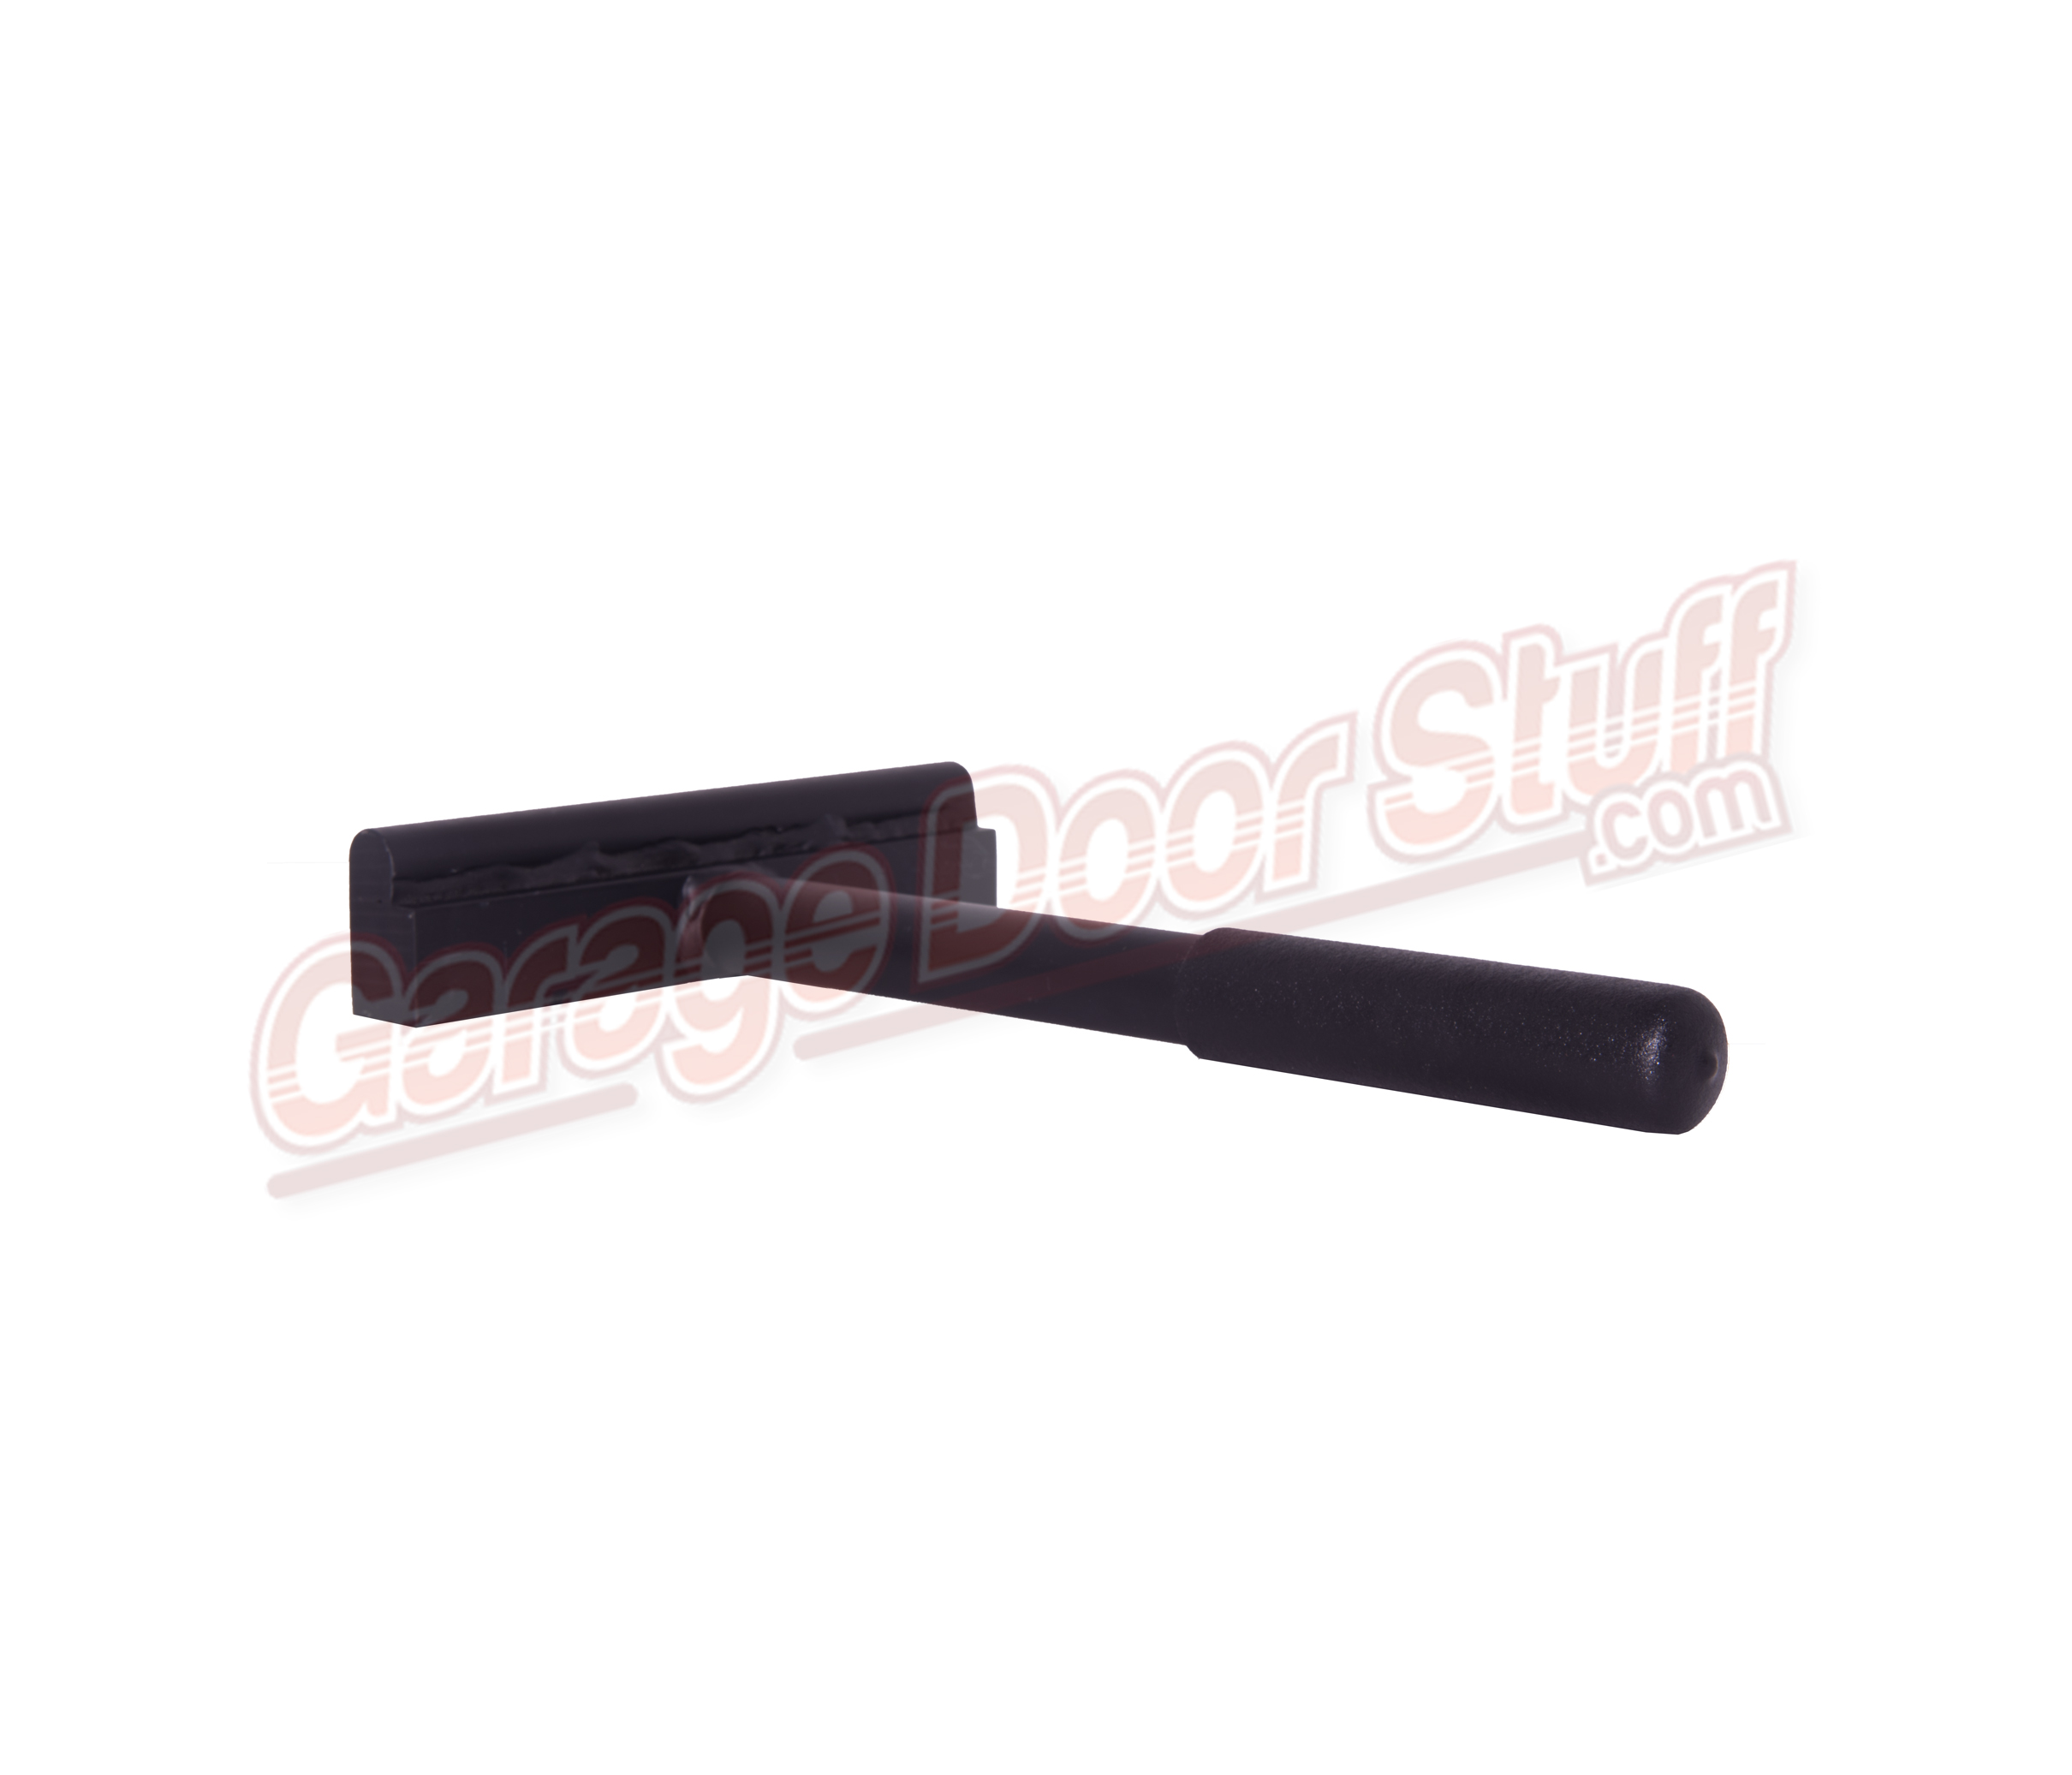 Garage Door Track Tool  sc 1 st  Garage Door Stuff & Garage Door Track Tool - Garage Door Stuff